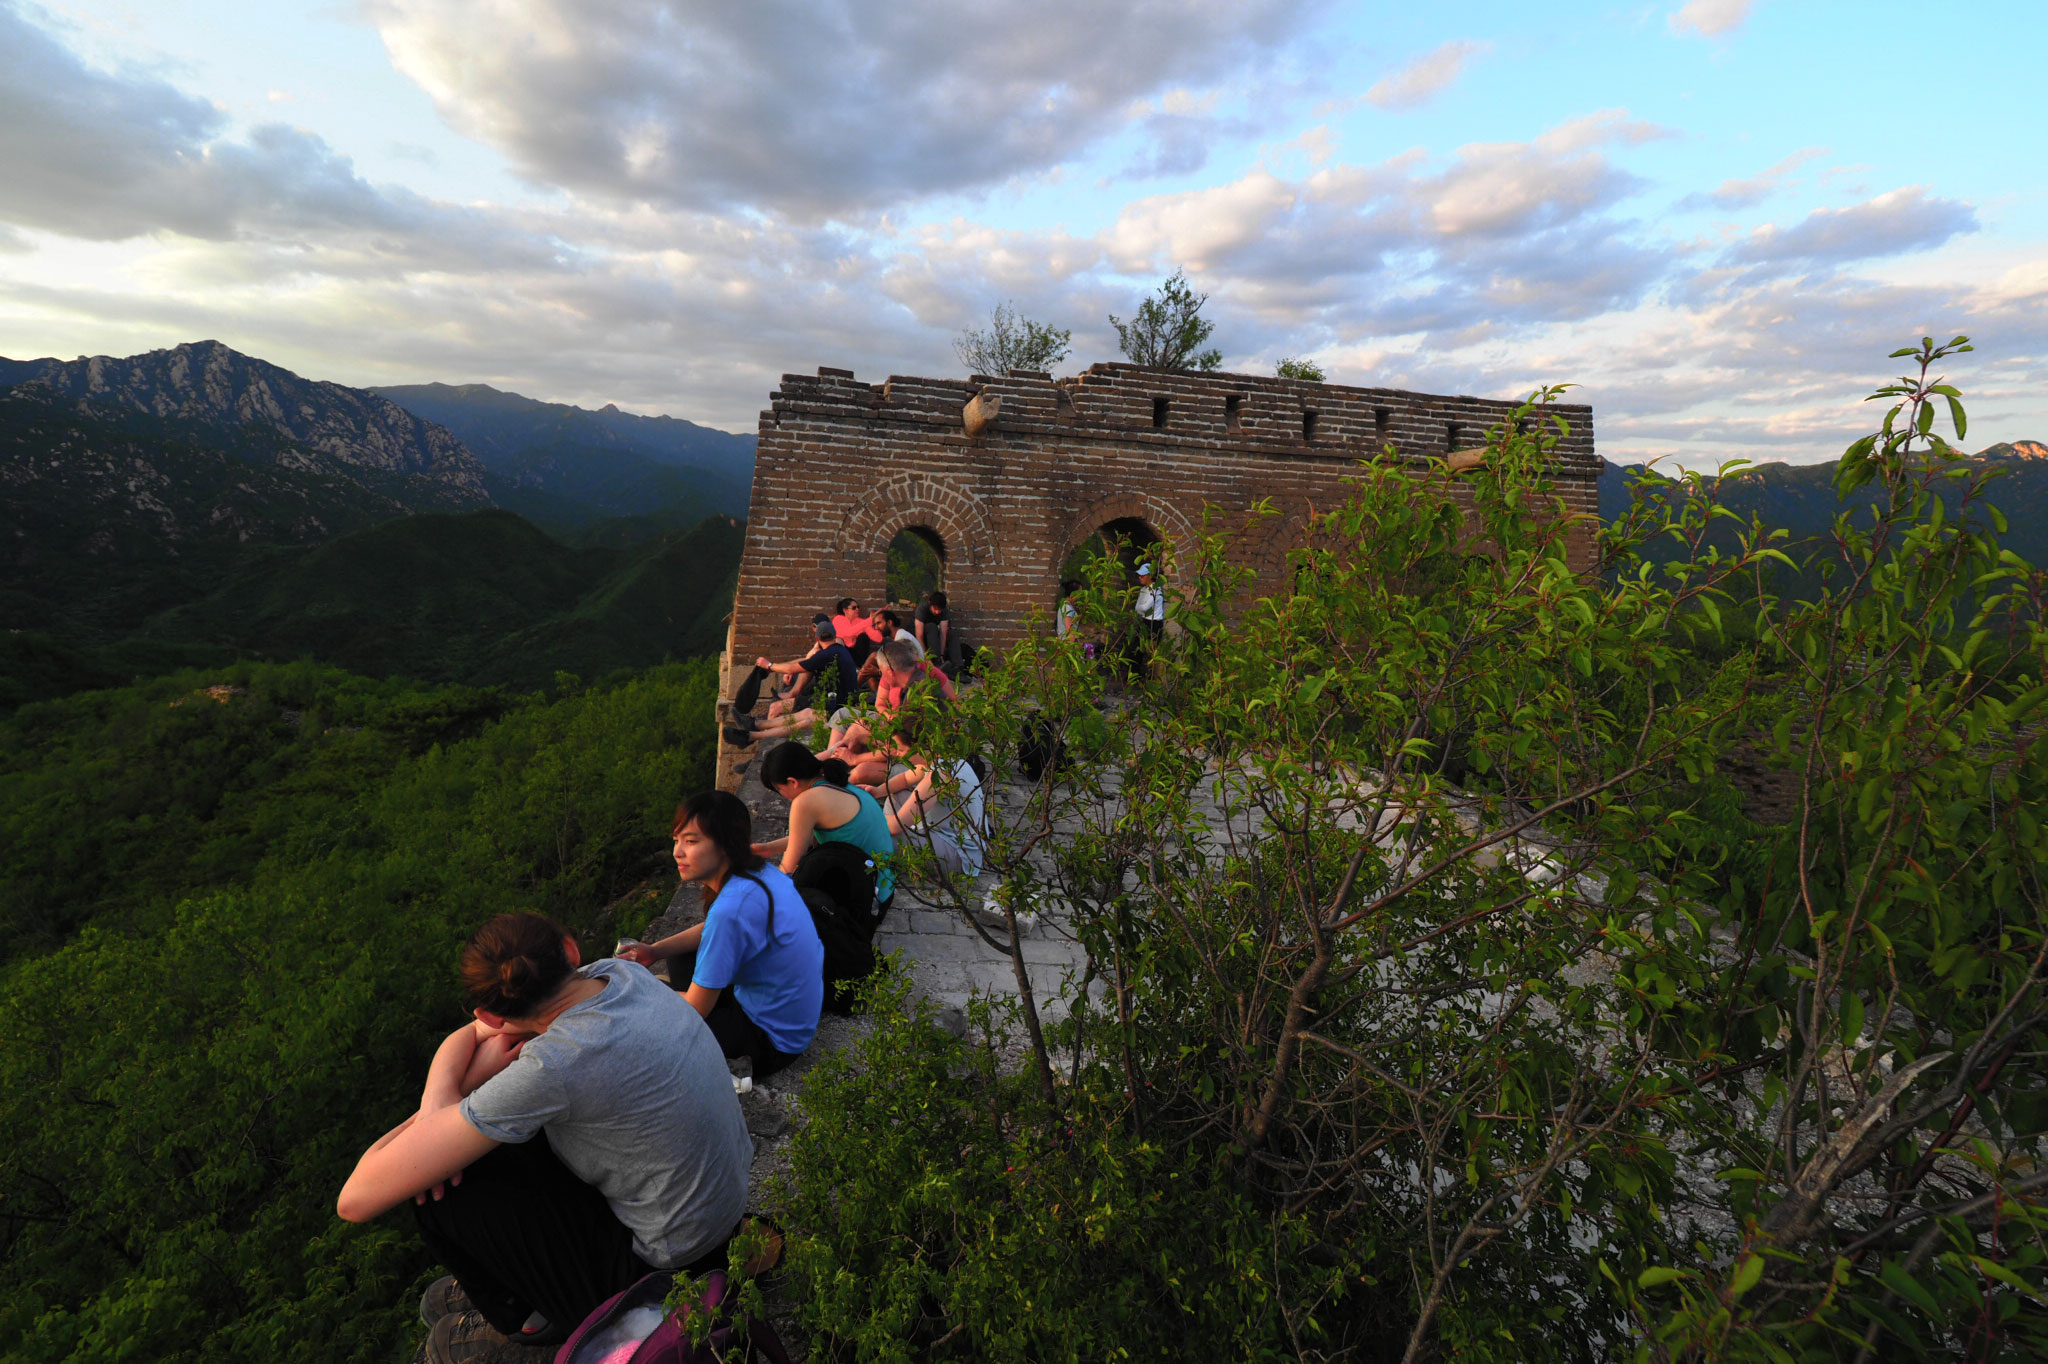 Sunset over the Huanghuacheng Great Wall, 2019/06/09 photo #11